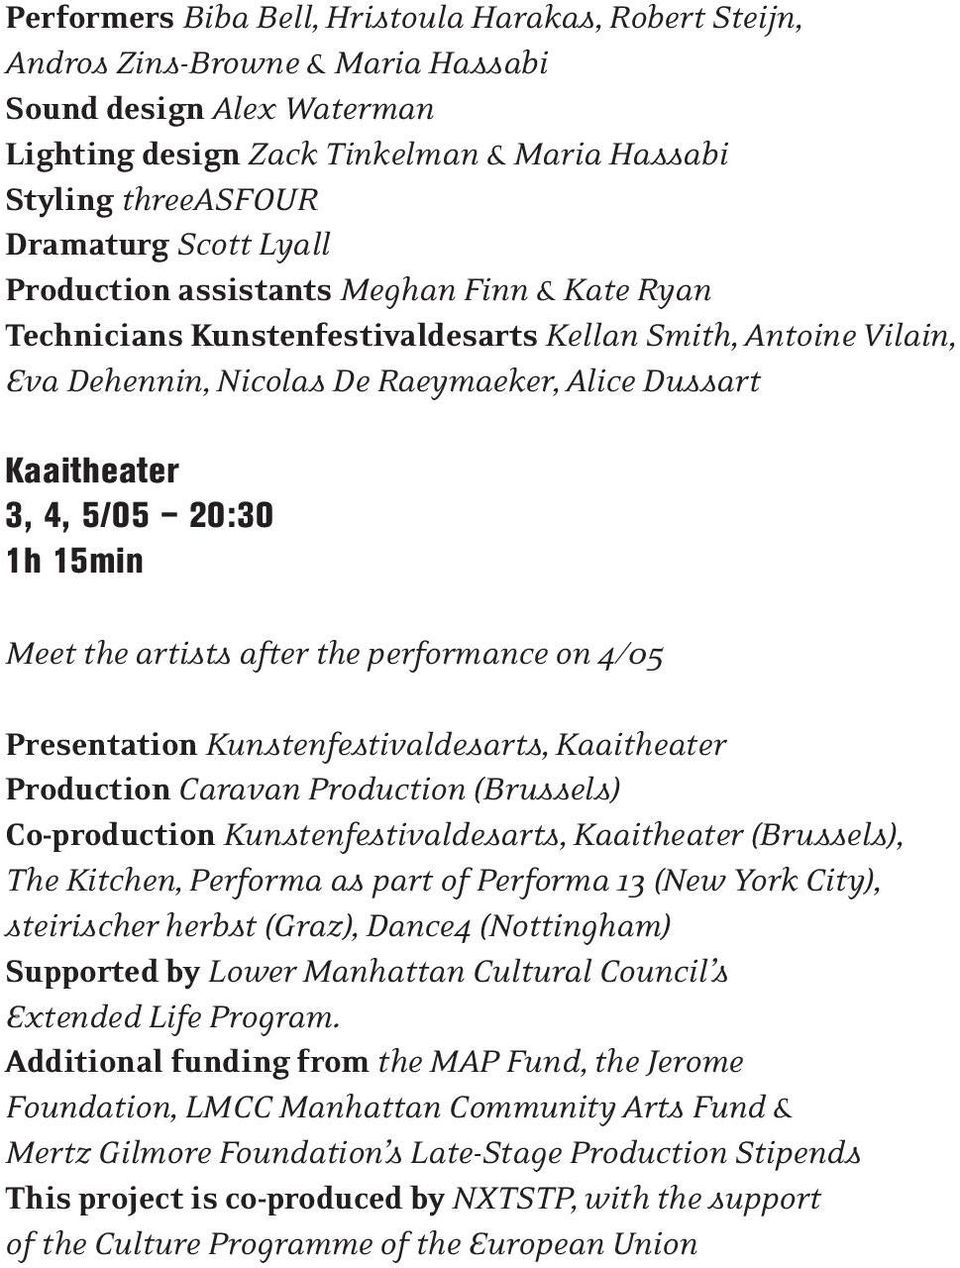 20:30 1h 15min Meet the artists after the performance on 4/05 Presentation Kunstenfestivaldesarts, Kaaitheater Production Caravan Production (Brussels) Co-production Kunstenfestivaldesarts,